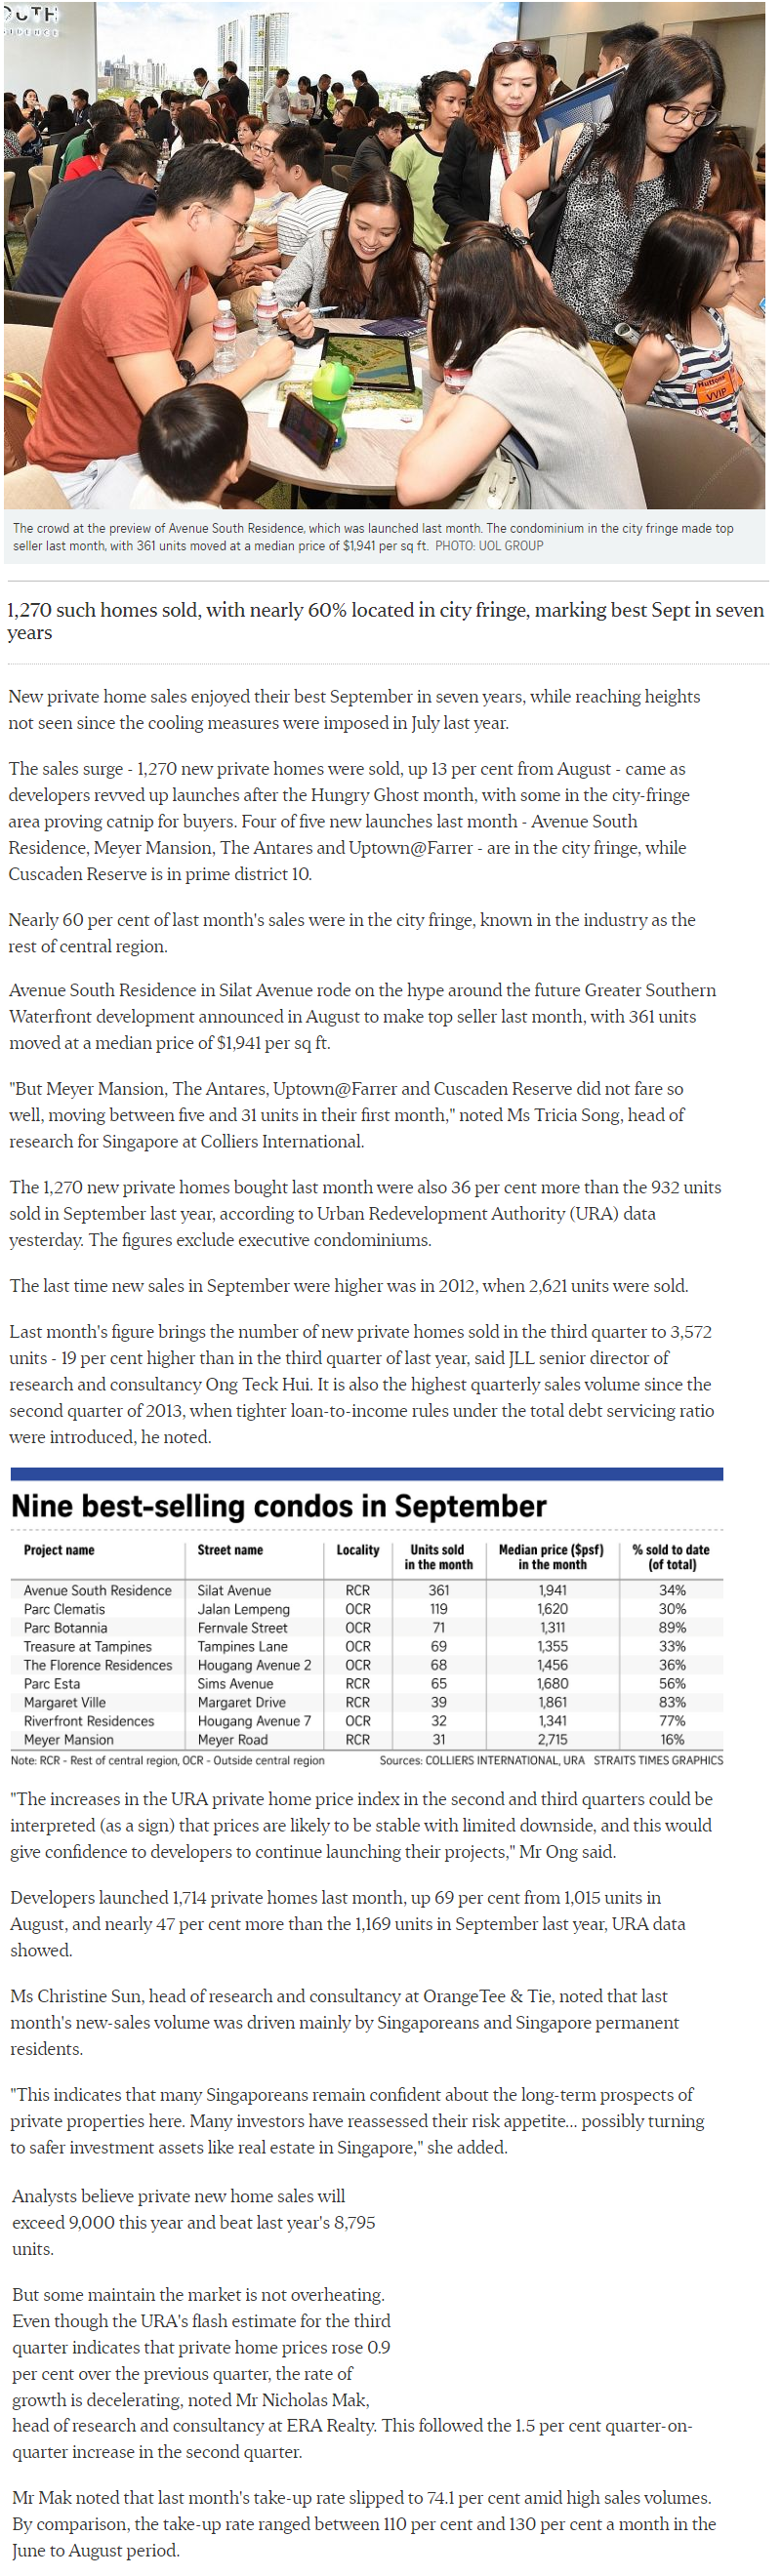 Pasir Ris 8 - New private Home Sales Hit A Hight In September